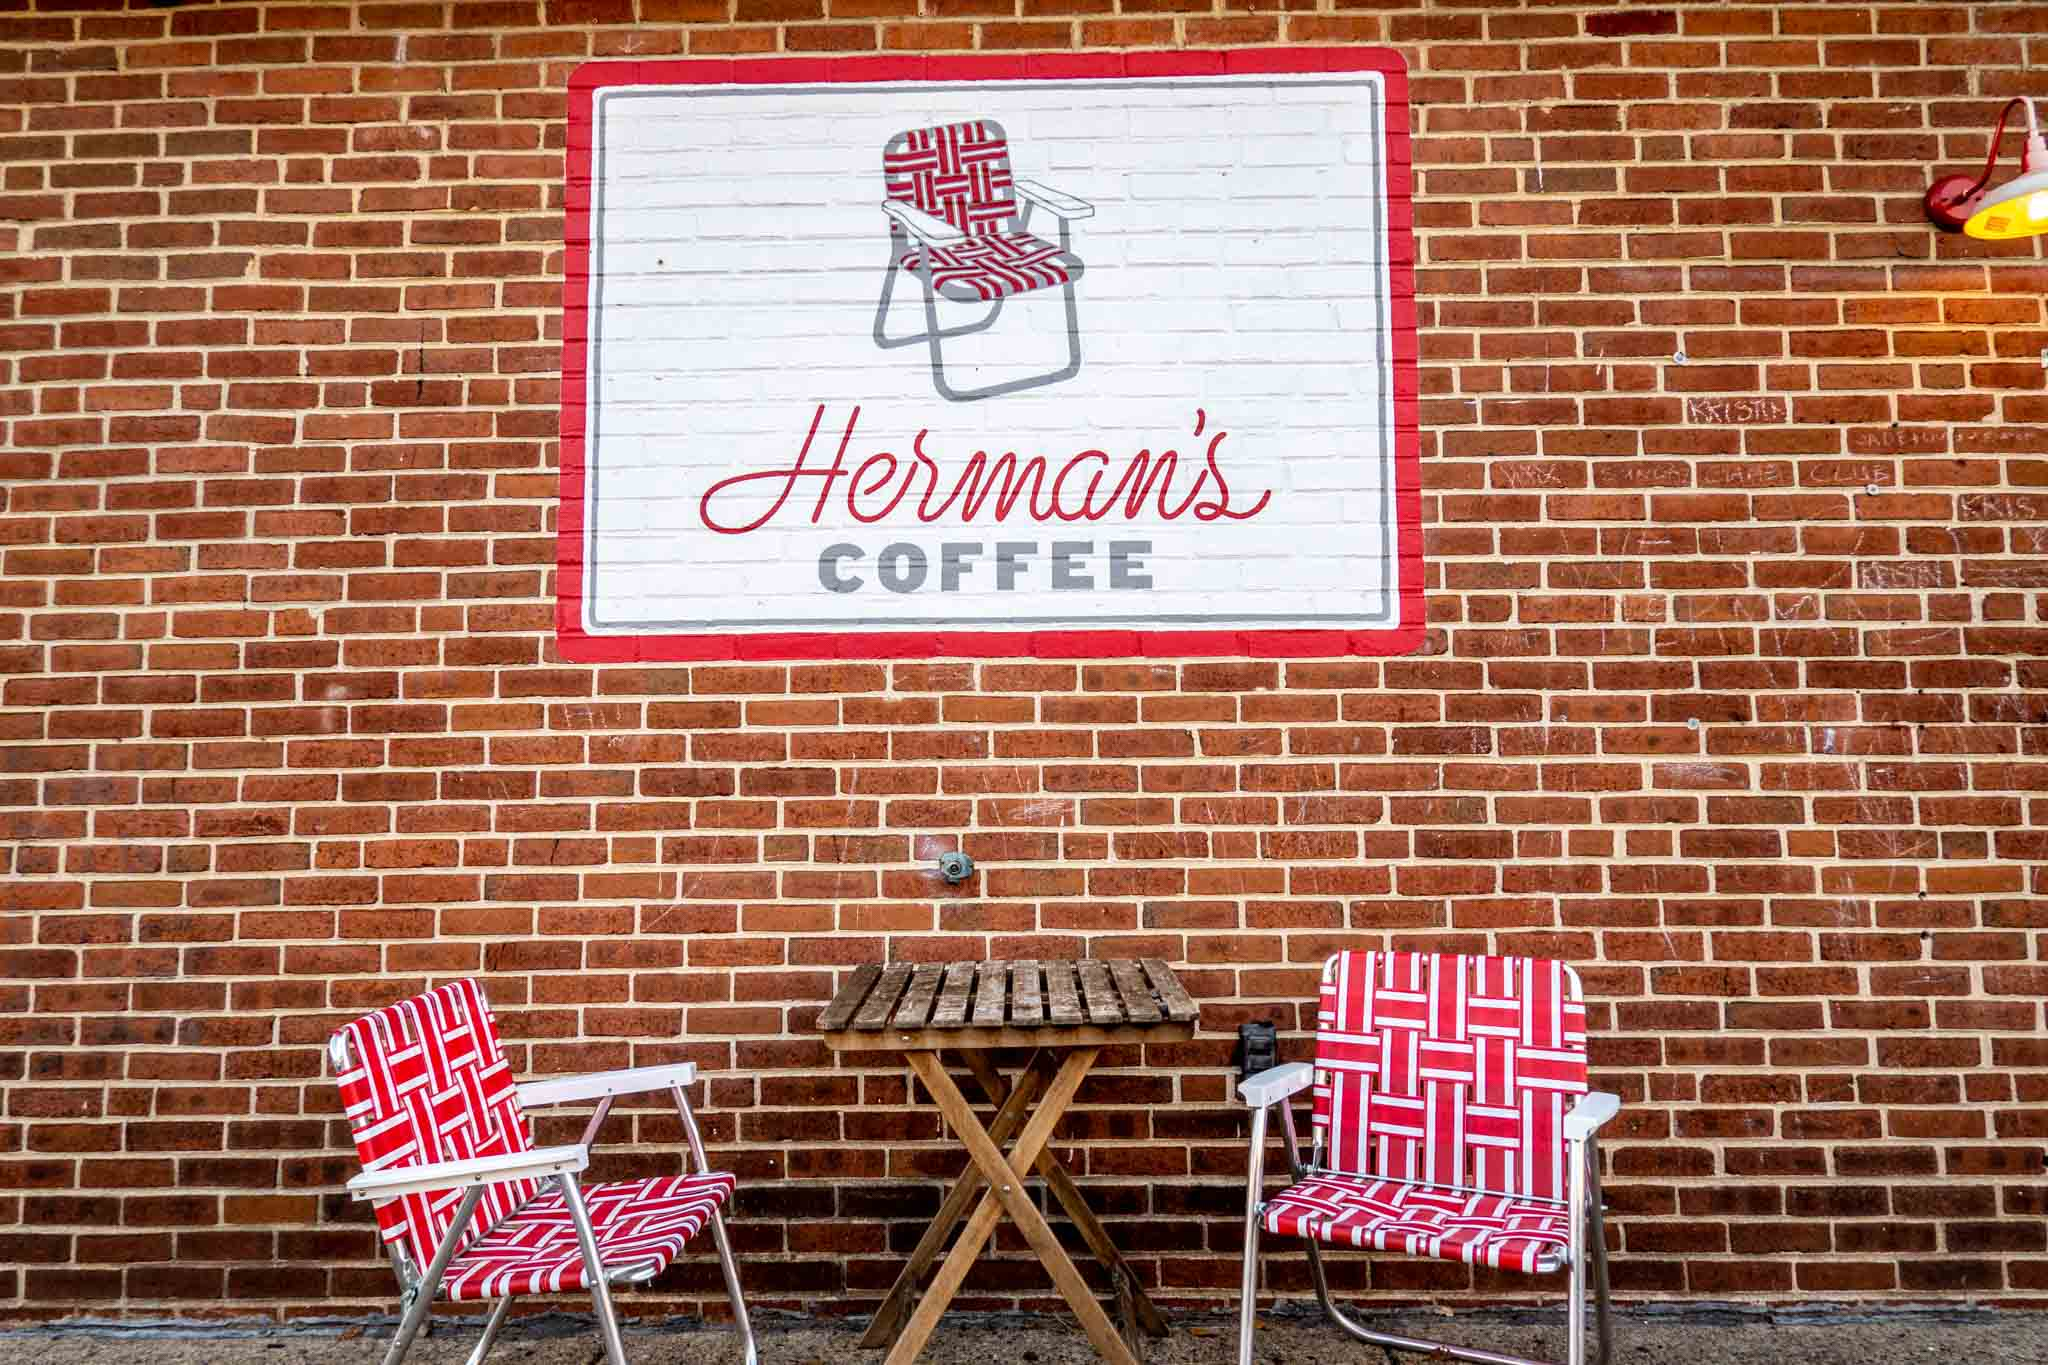 """Red lawn chairs under sign for """"Herman's Coffee"""""""